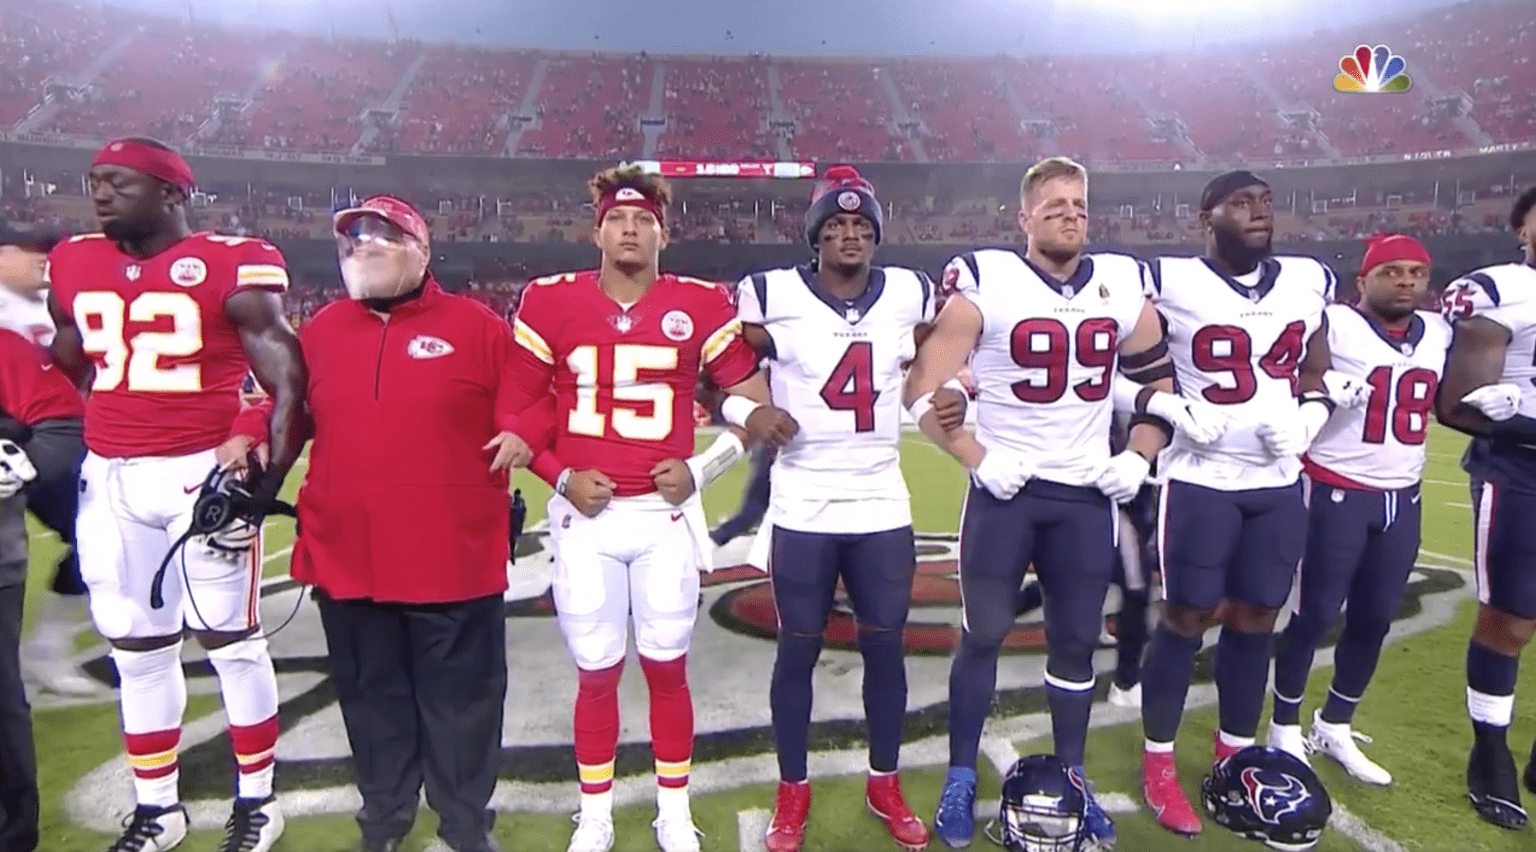 Get woke, go broke: NFL fans boo during Chiefs and Texans game, signaling they're sick of politics